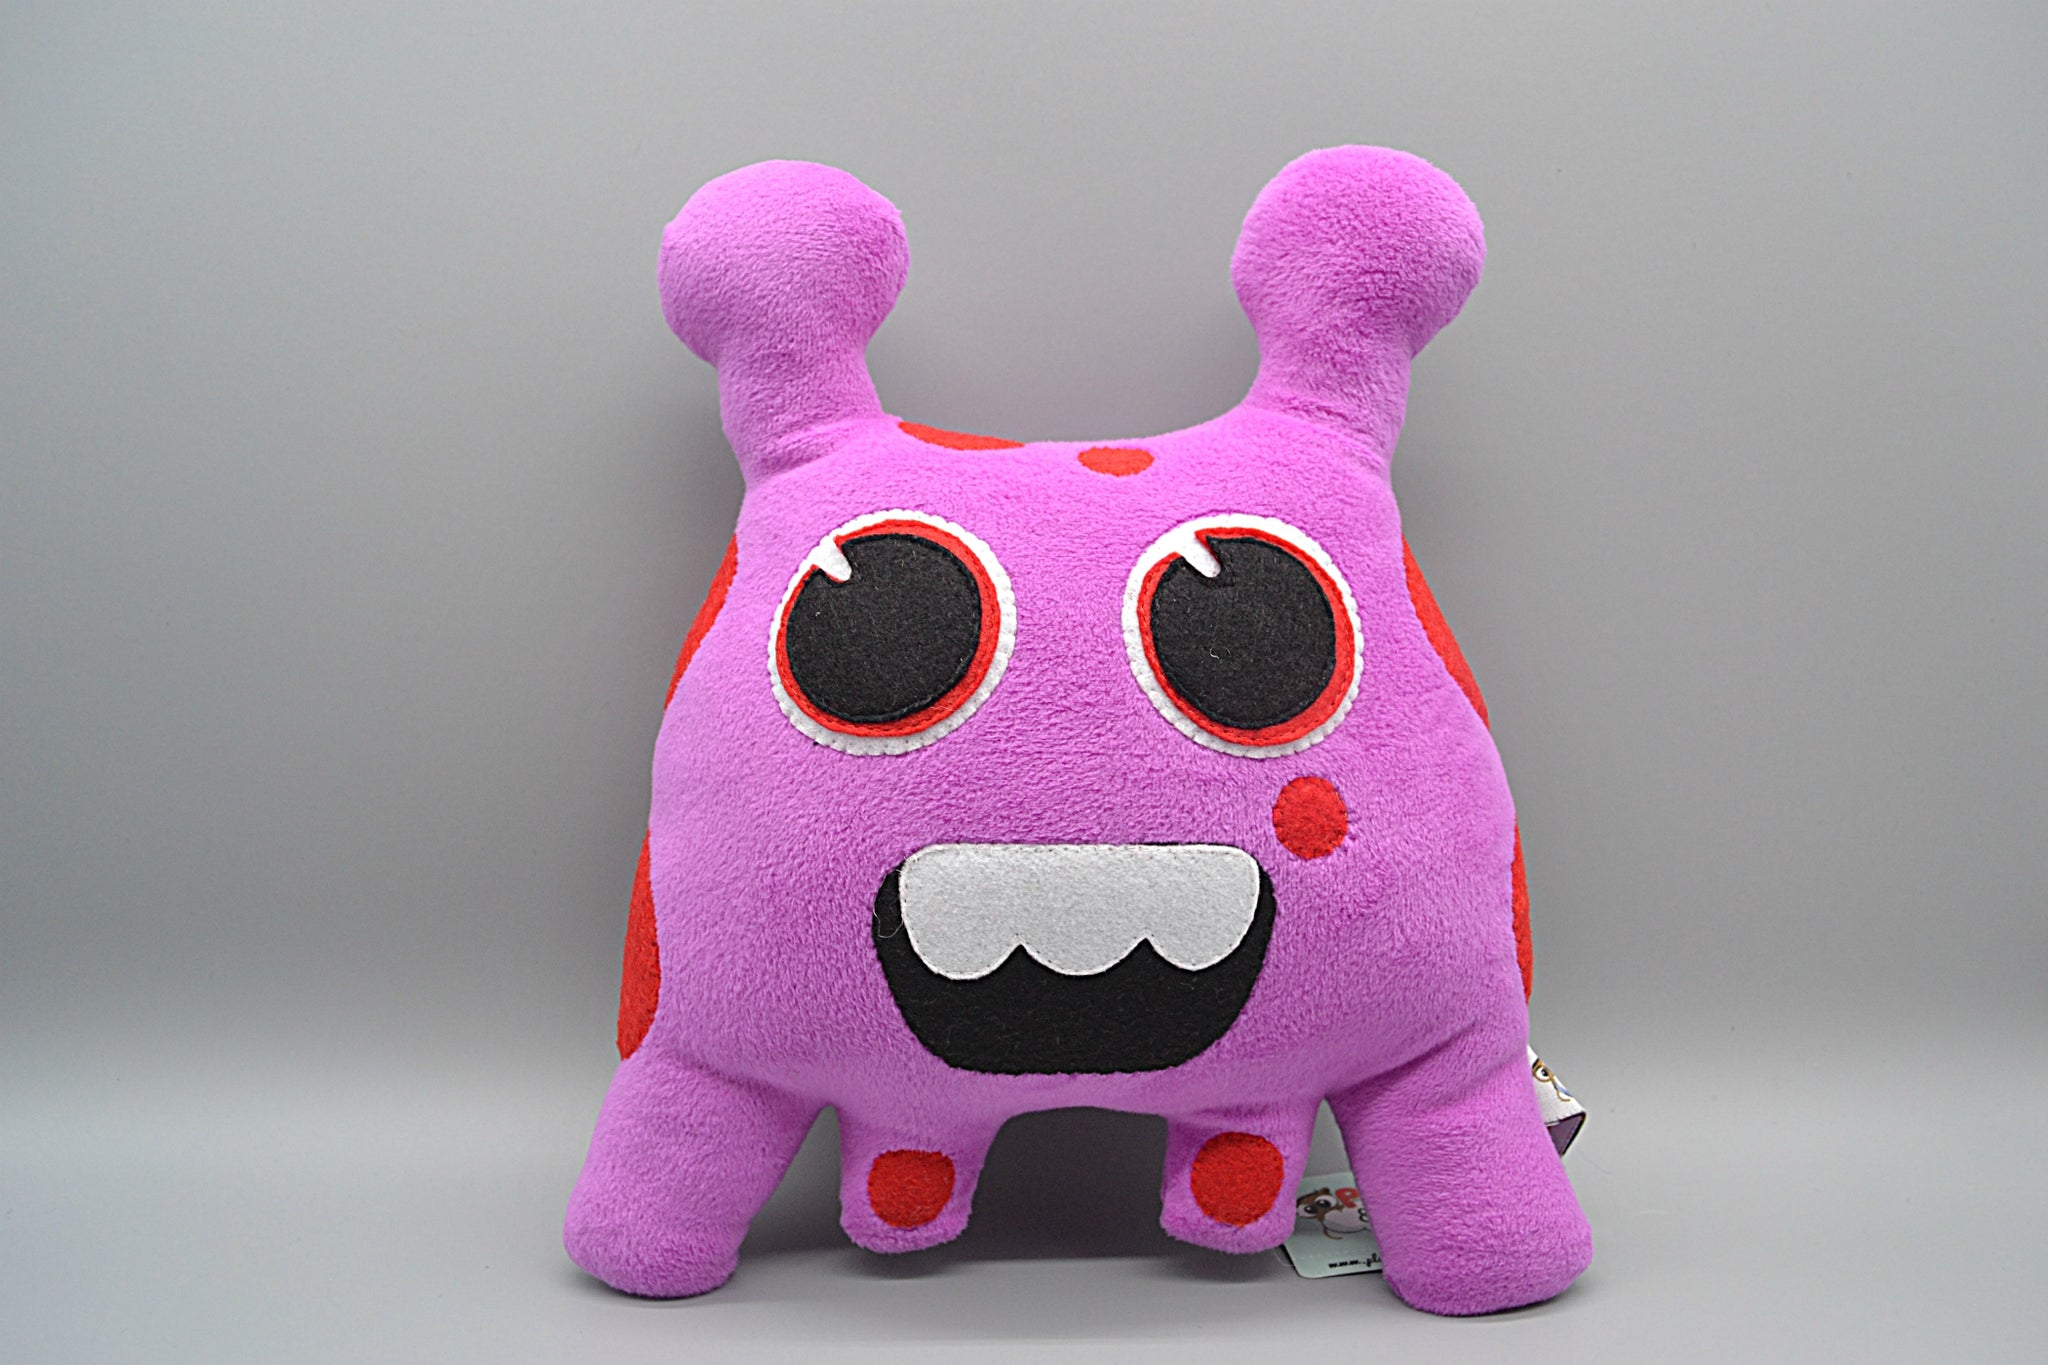 Little Monster Plush Toy: Lili